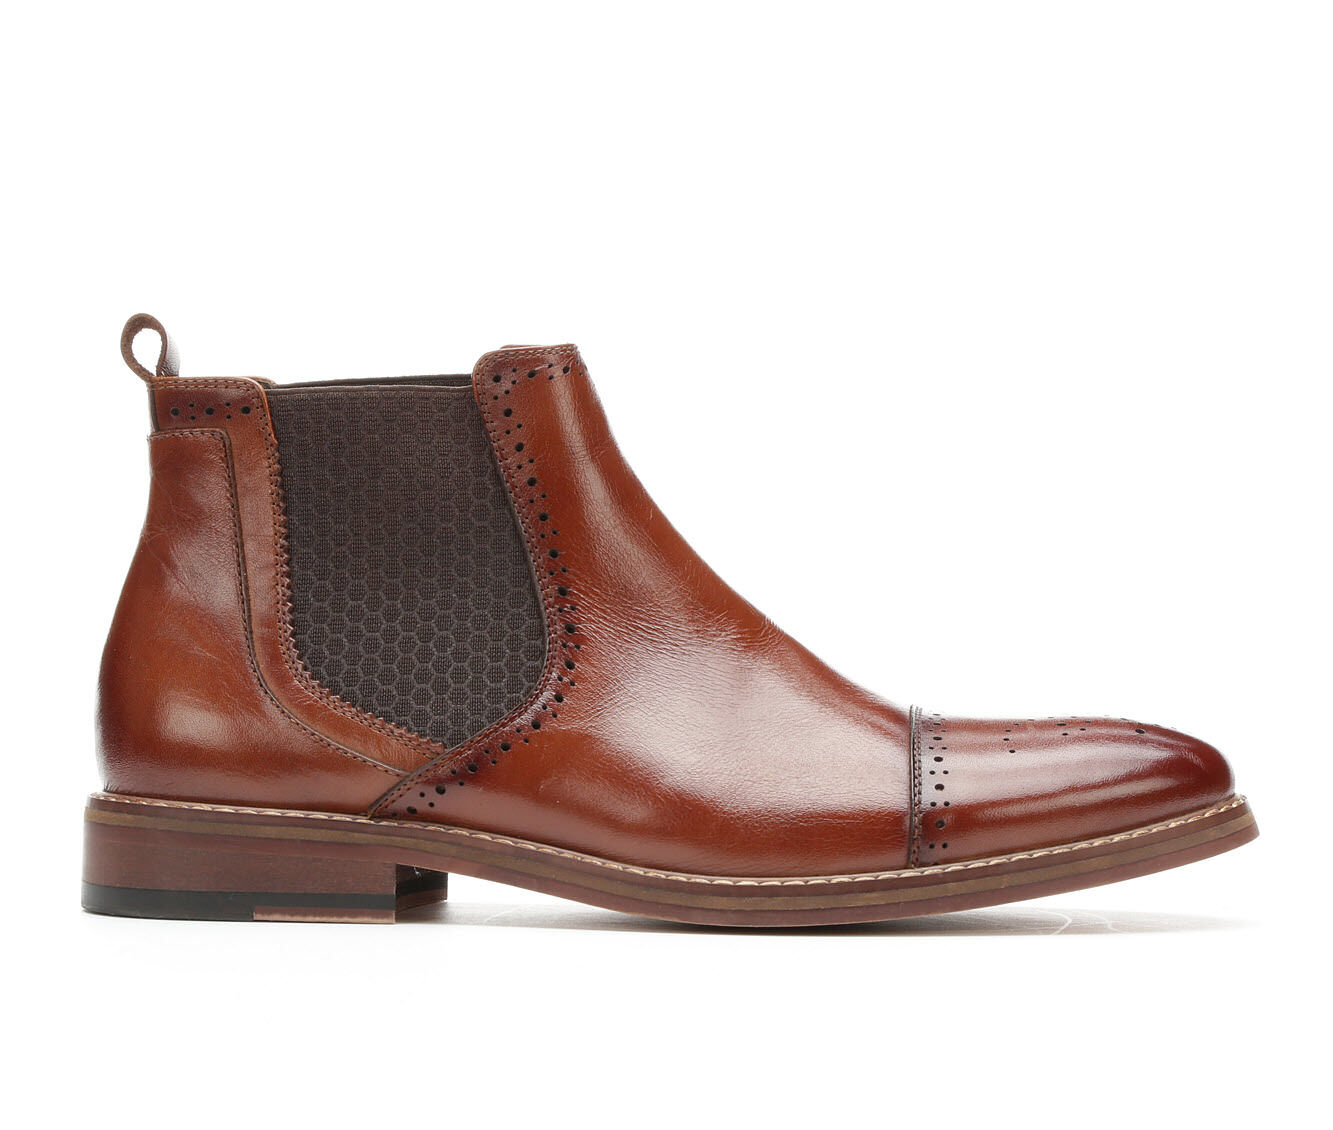 free shipping clearance store Men's Stacy Adams Alomar Dress Boots buy cheap low price fee shipping jrGjJAcq